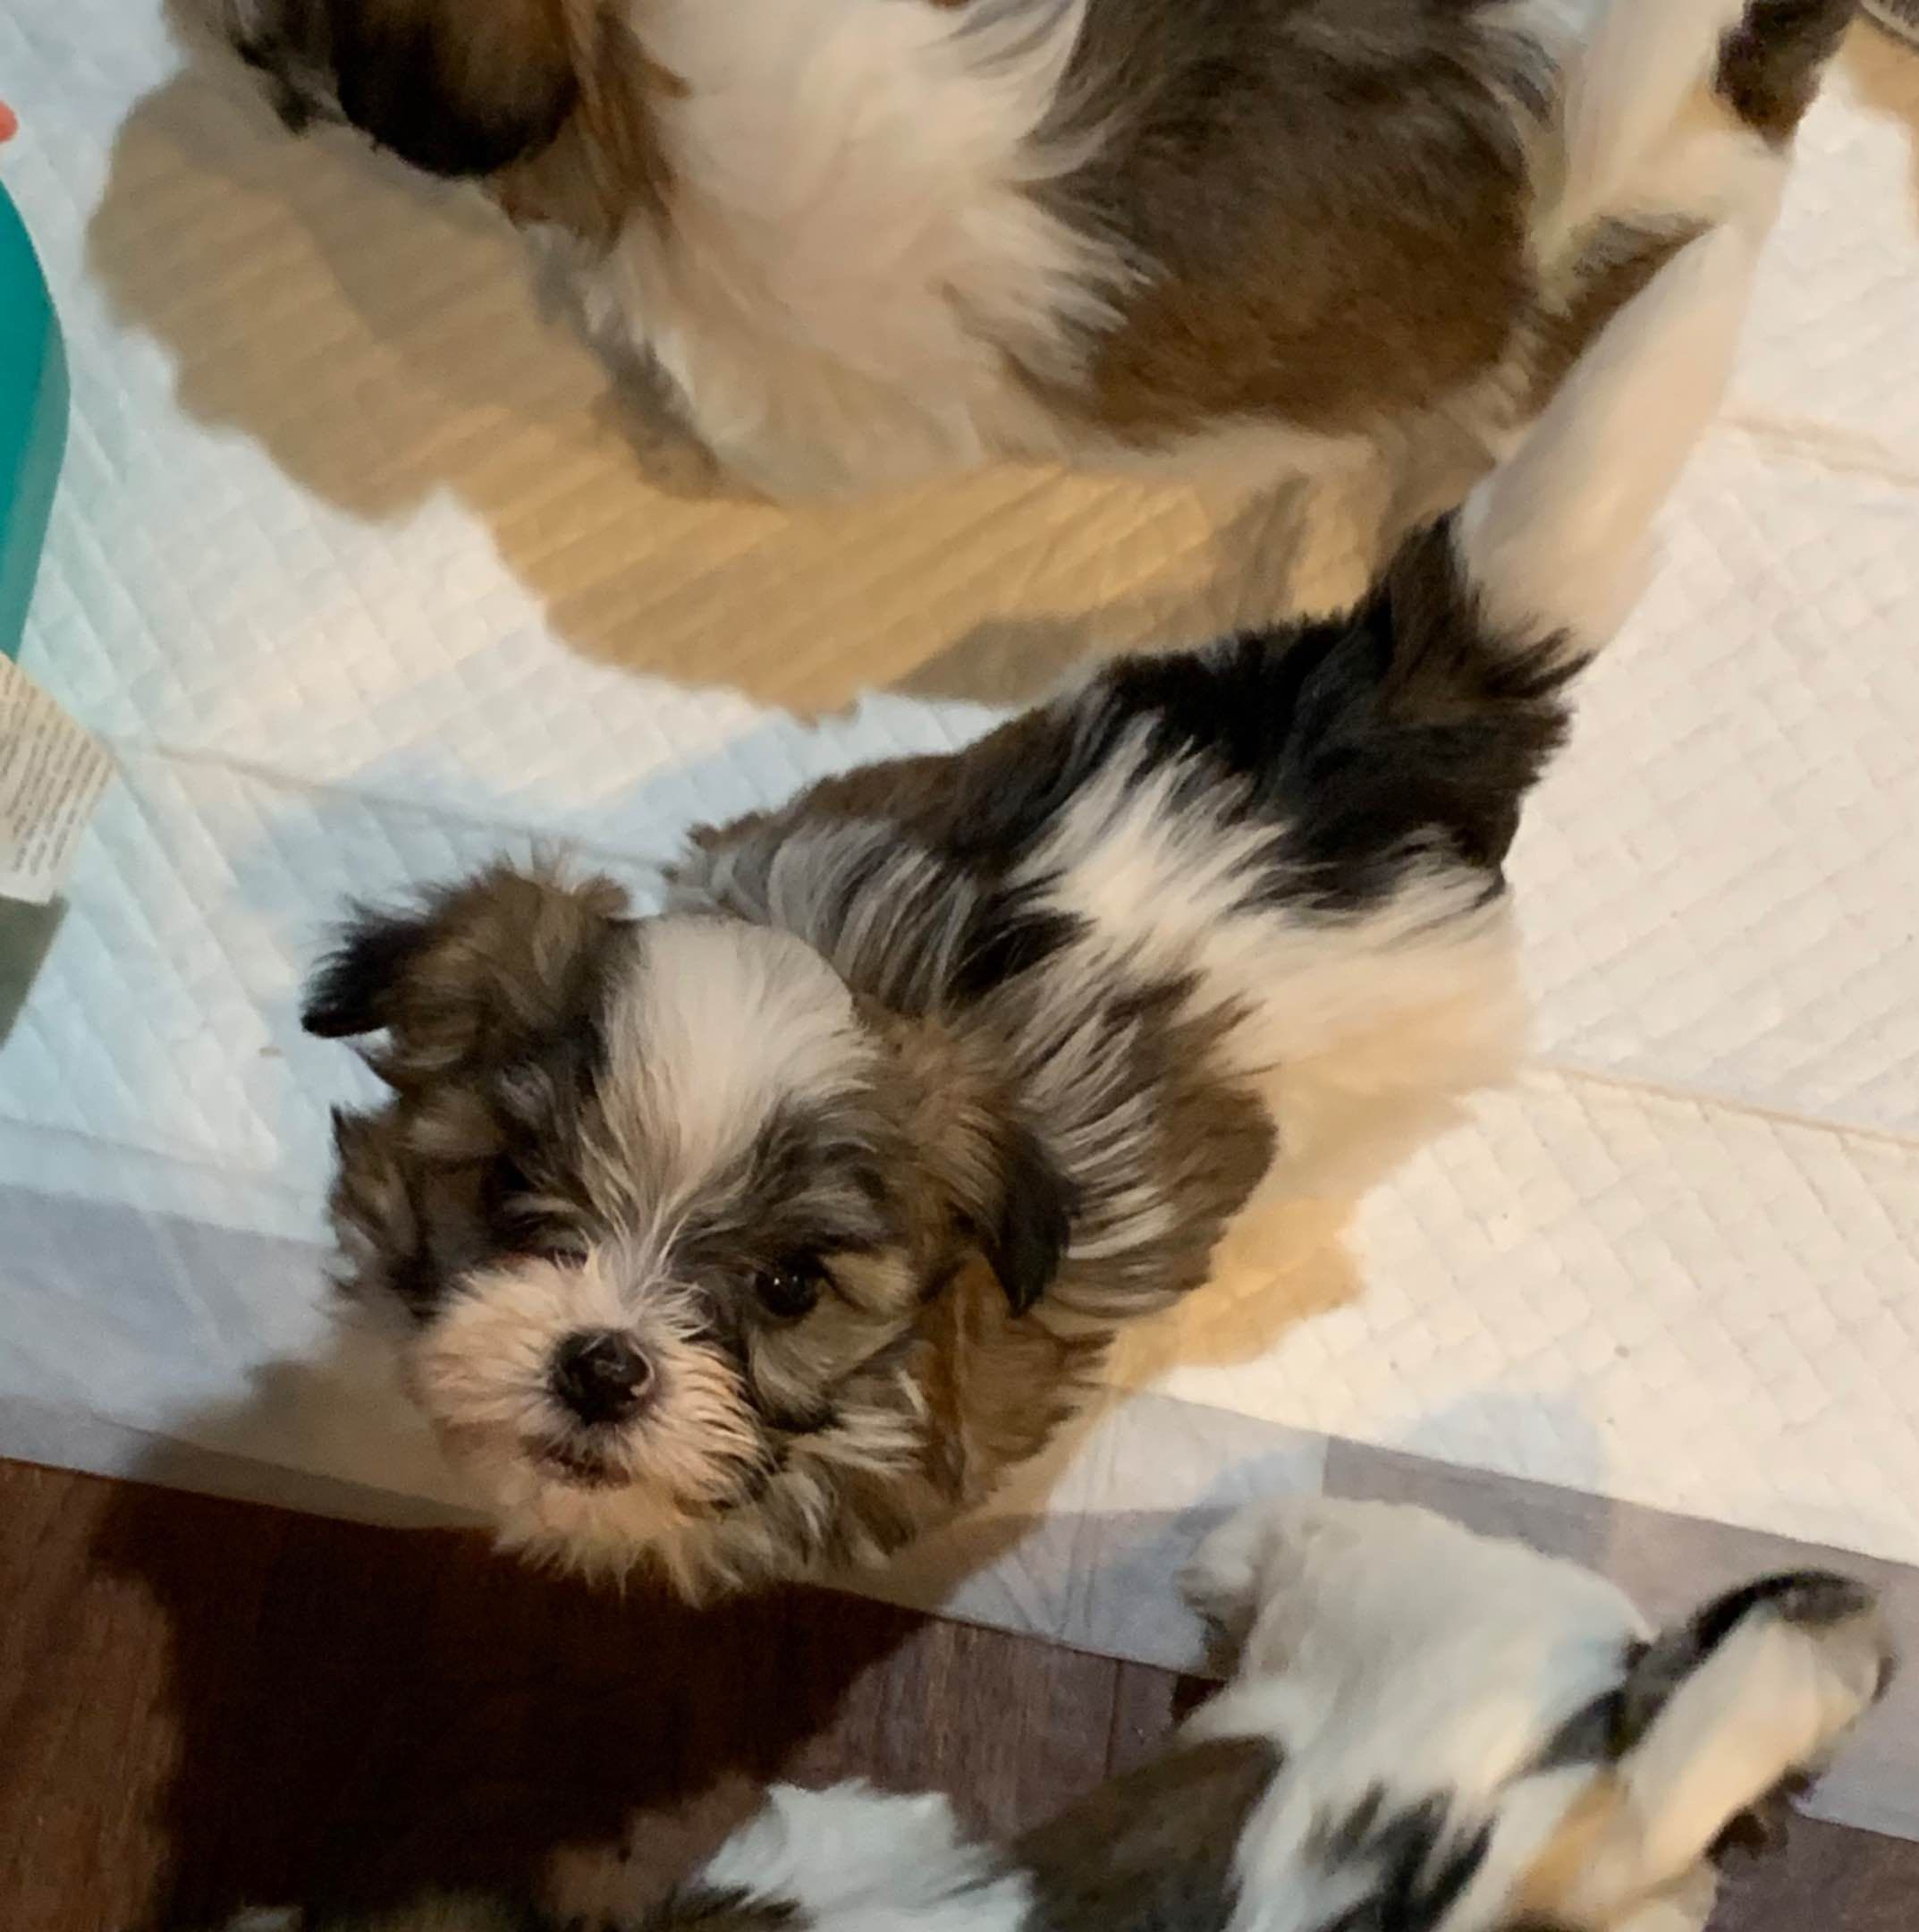 Marcy Skirvin Has Havanese Puppies For Sale In Woodville Oh On Akc Puppyfinder In 2020 Havanese Puppies Cute Puppies Havanese Puppies For Sale